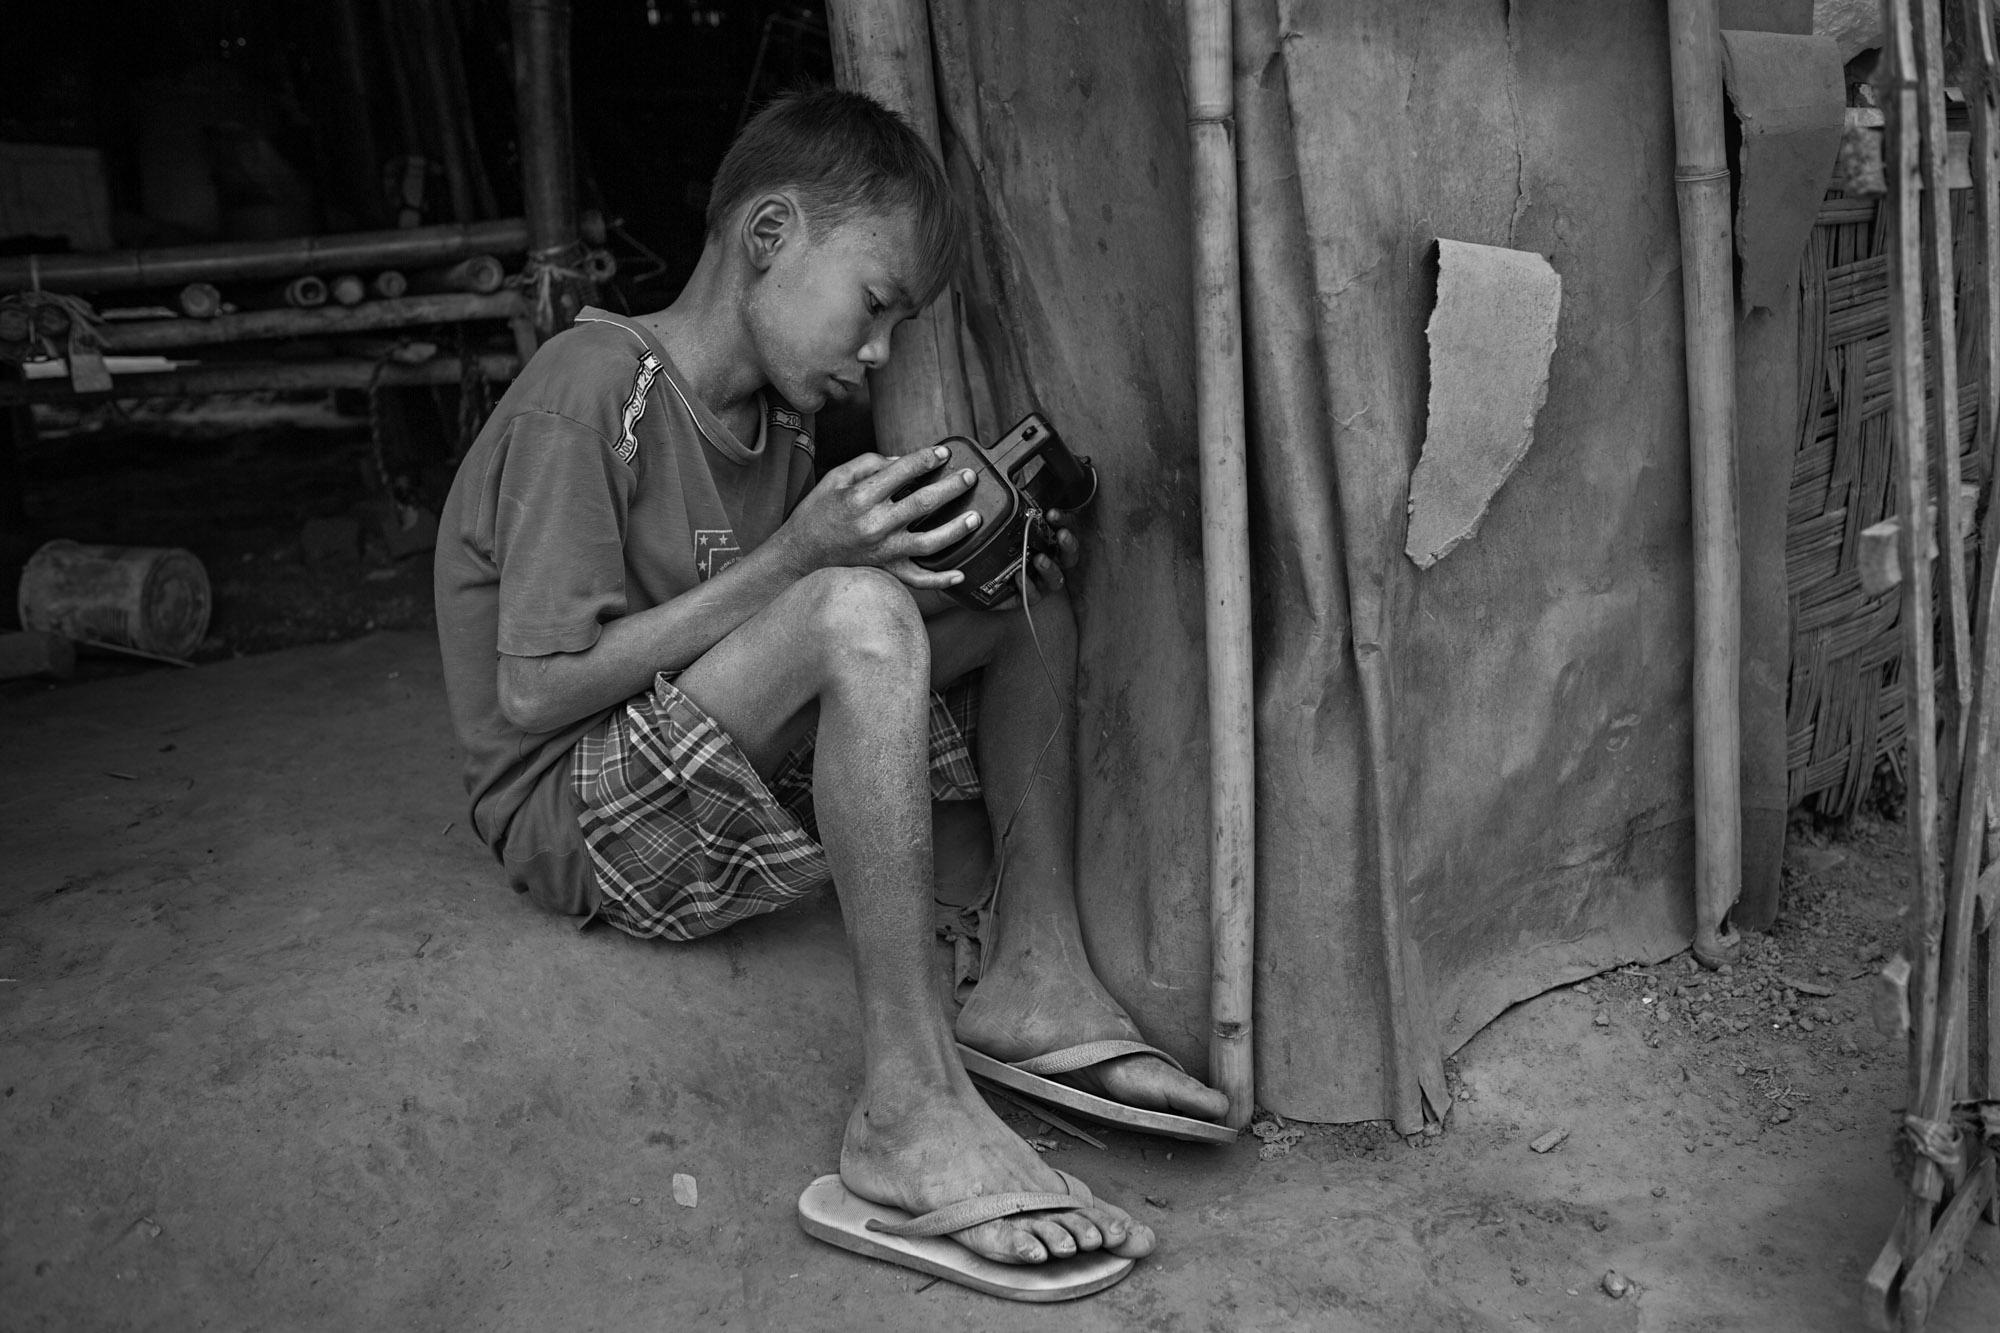 Naing Lin Oo listens to the weak signal from an old radio he found while scavenging through a trash dump. Any money he earned went to his family and he struggled with not being able to have any possessions of his own.